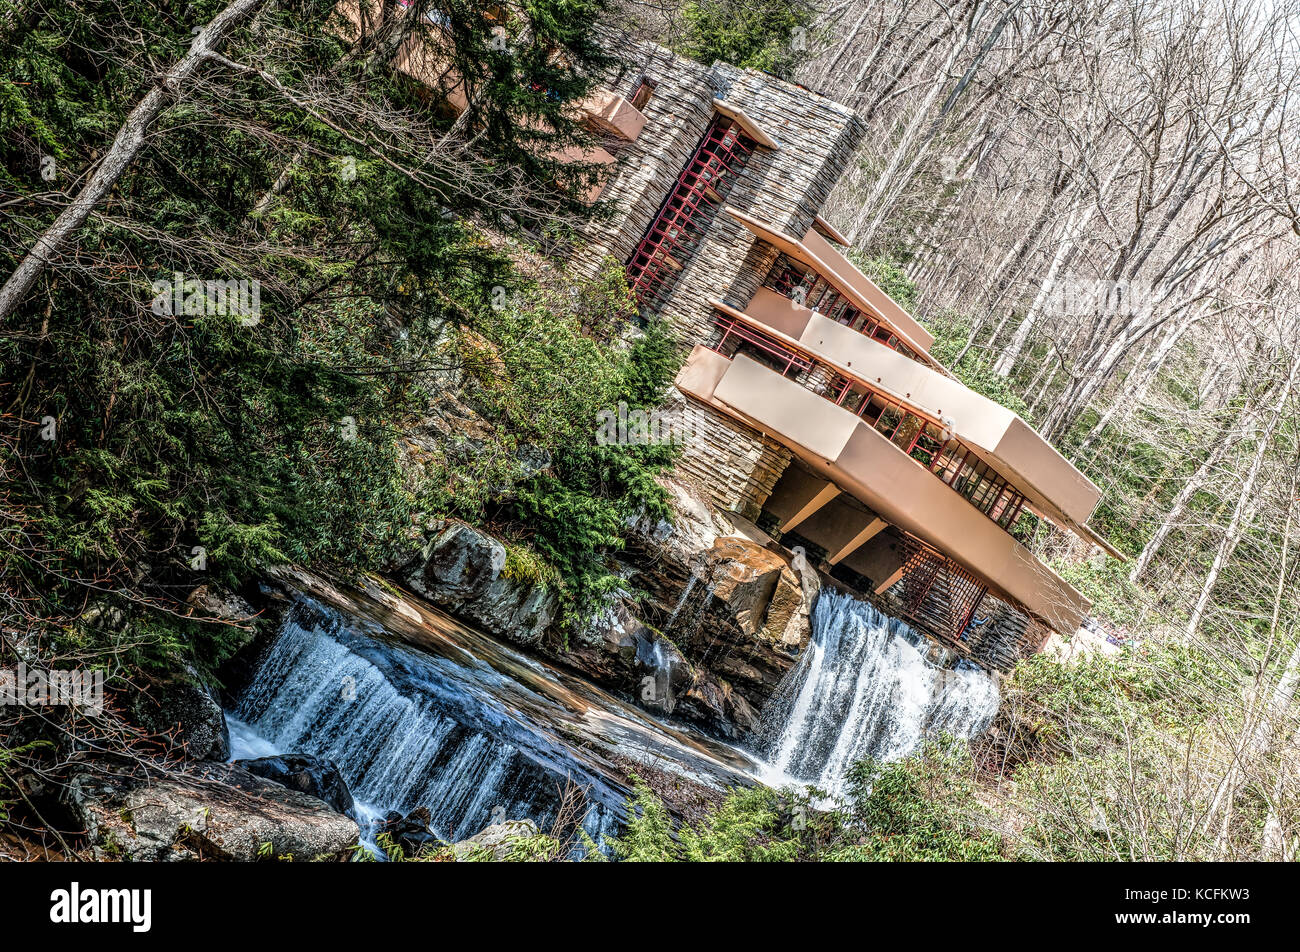 Falling Water House Usa Fallingwater House From The Architect Frank Lloyd Wright Mill Run